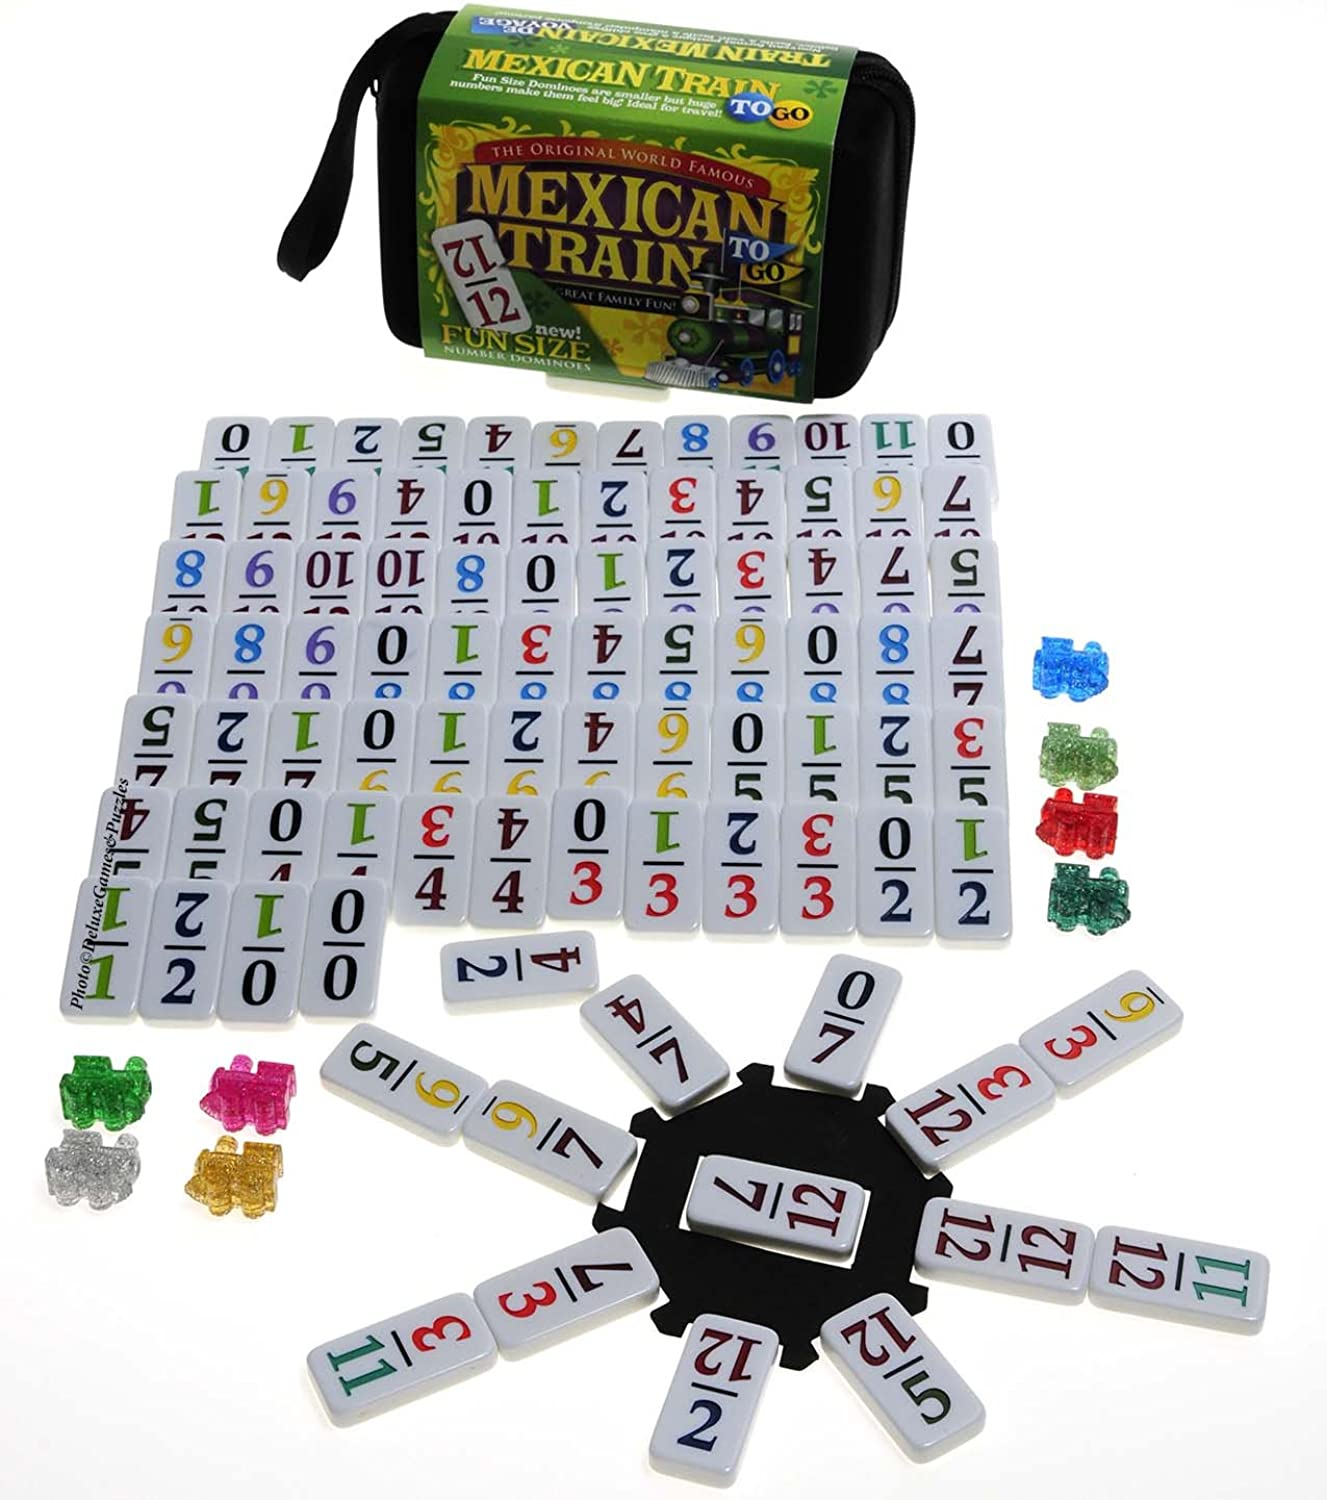 Mexican Train Double 12 Dominoes _ Travel Größe _with ColGoldt Numbers